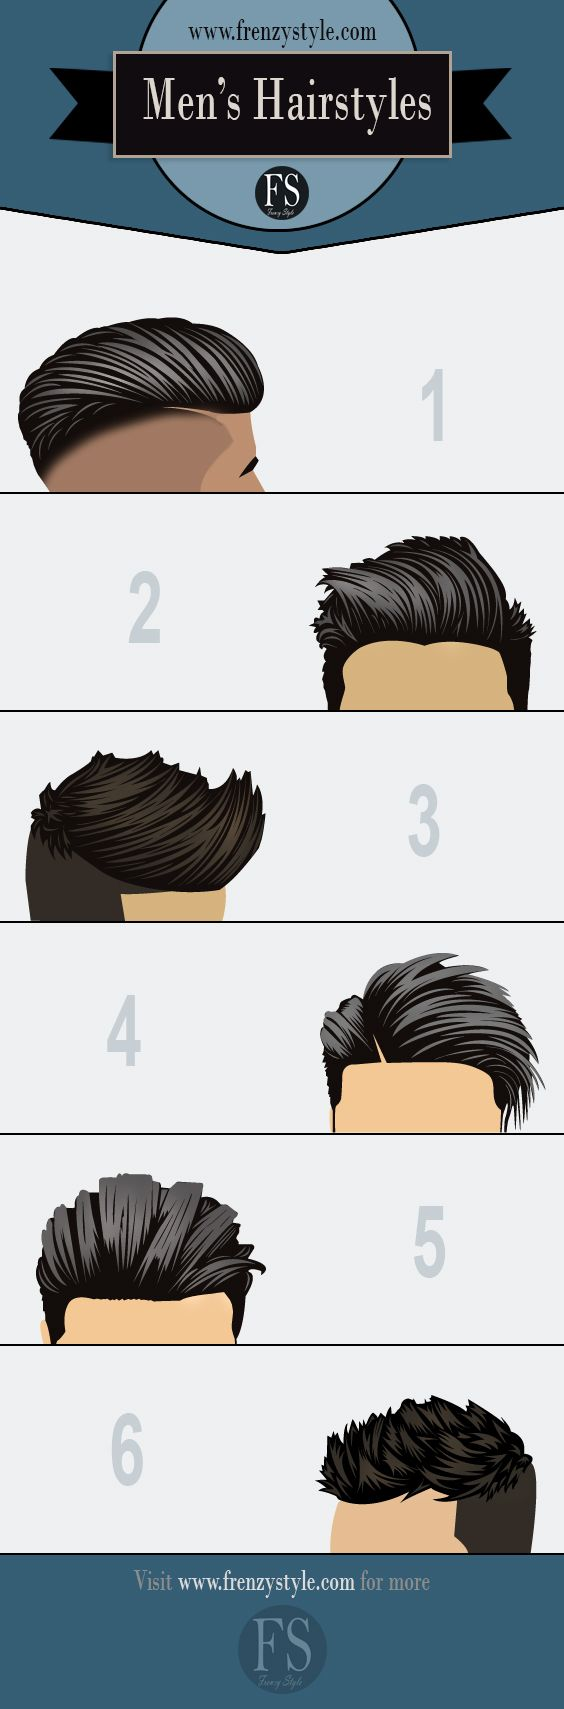 6 Popular Men's Hairstyles and Haircuts and the products used to make them